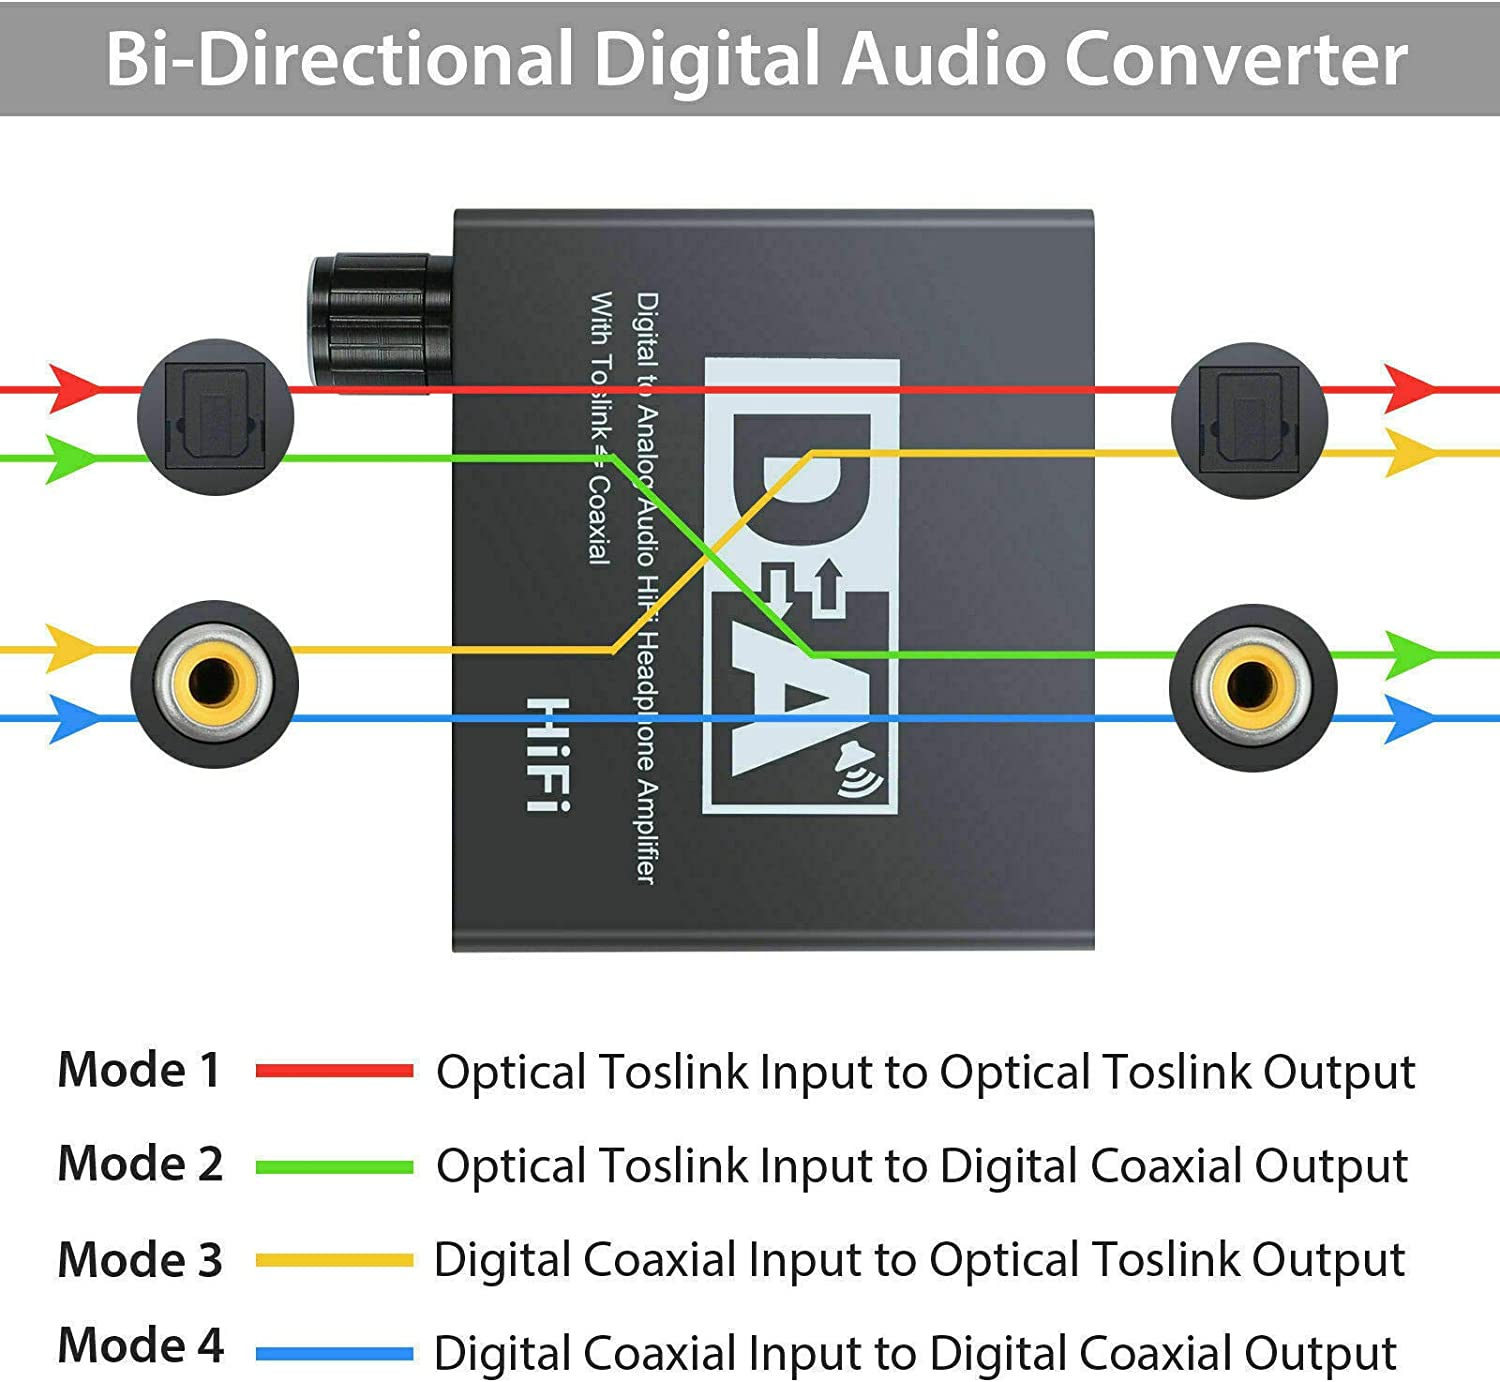 192kHz DAC Digital to Analog Converter with Volume Control, Digital Coaxial Stereo L/R RCA 3.5mm Audio Adapter w/Toslink Optical enlarge